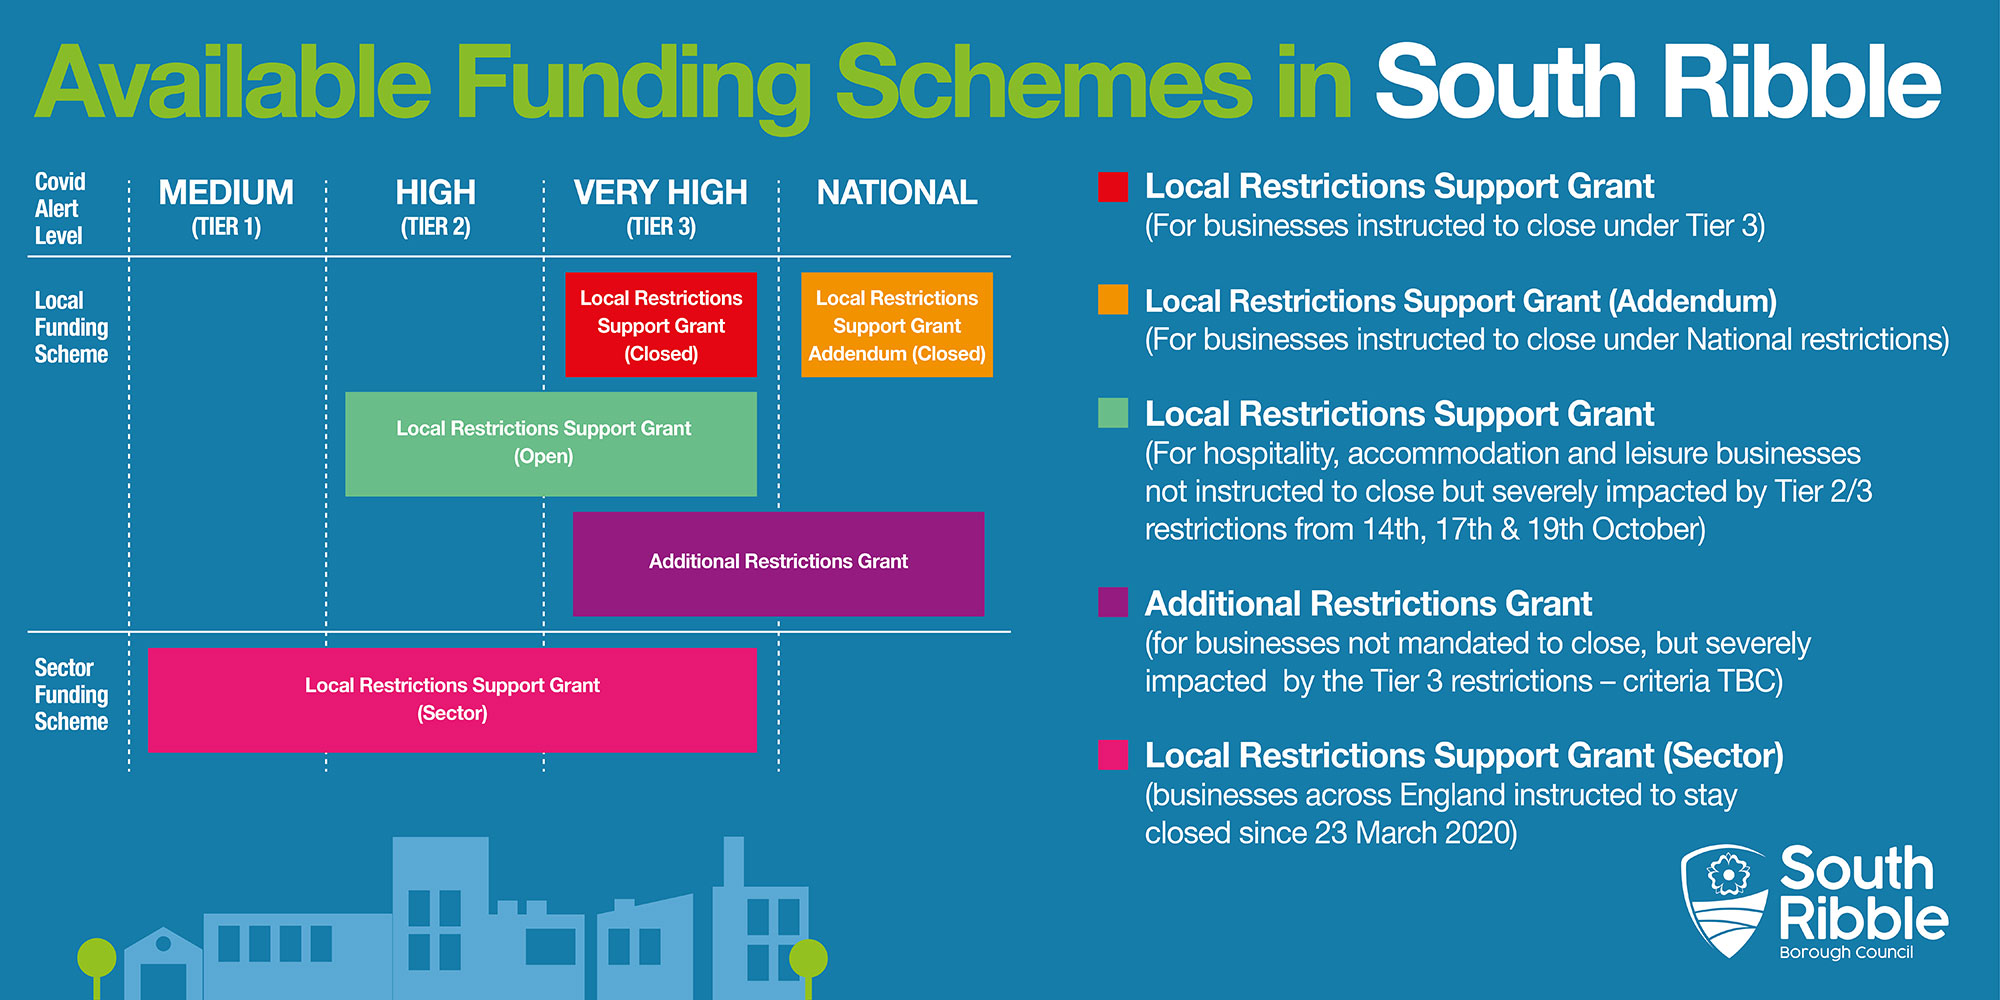 Available Funding Schemes in South Ribble